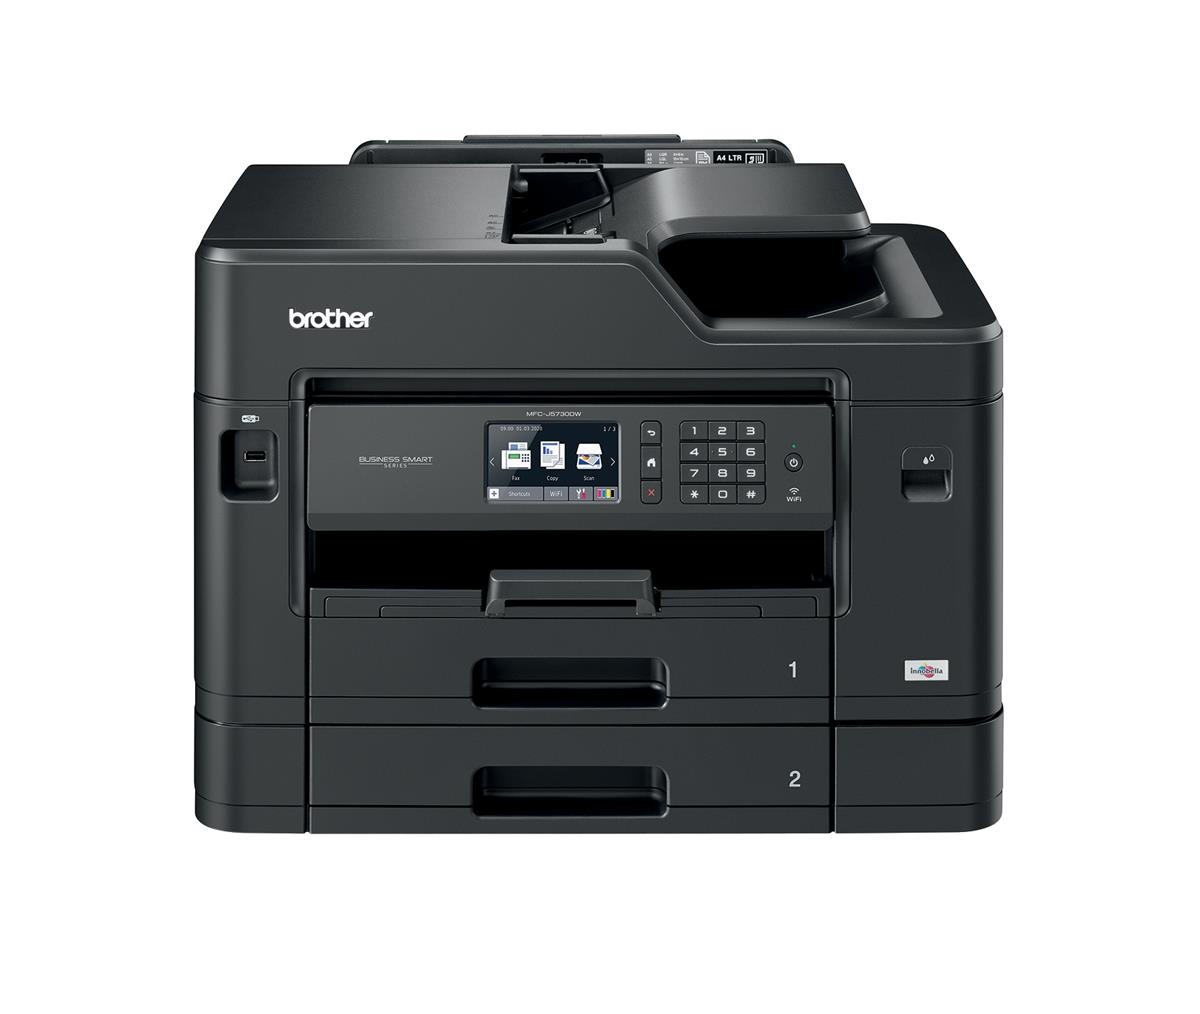 Image for Brother Colour Inkjet Multifunction Printer Wired and Wireless 20ipm A3 Black Ref MFCJ5730DWZU1